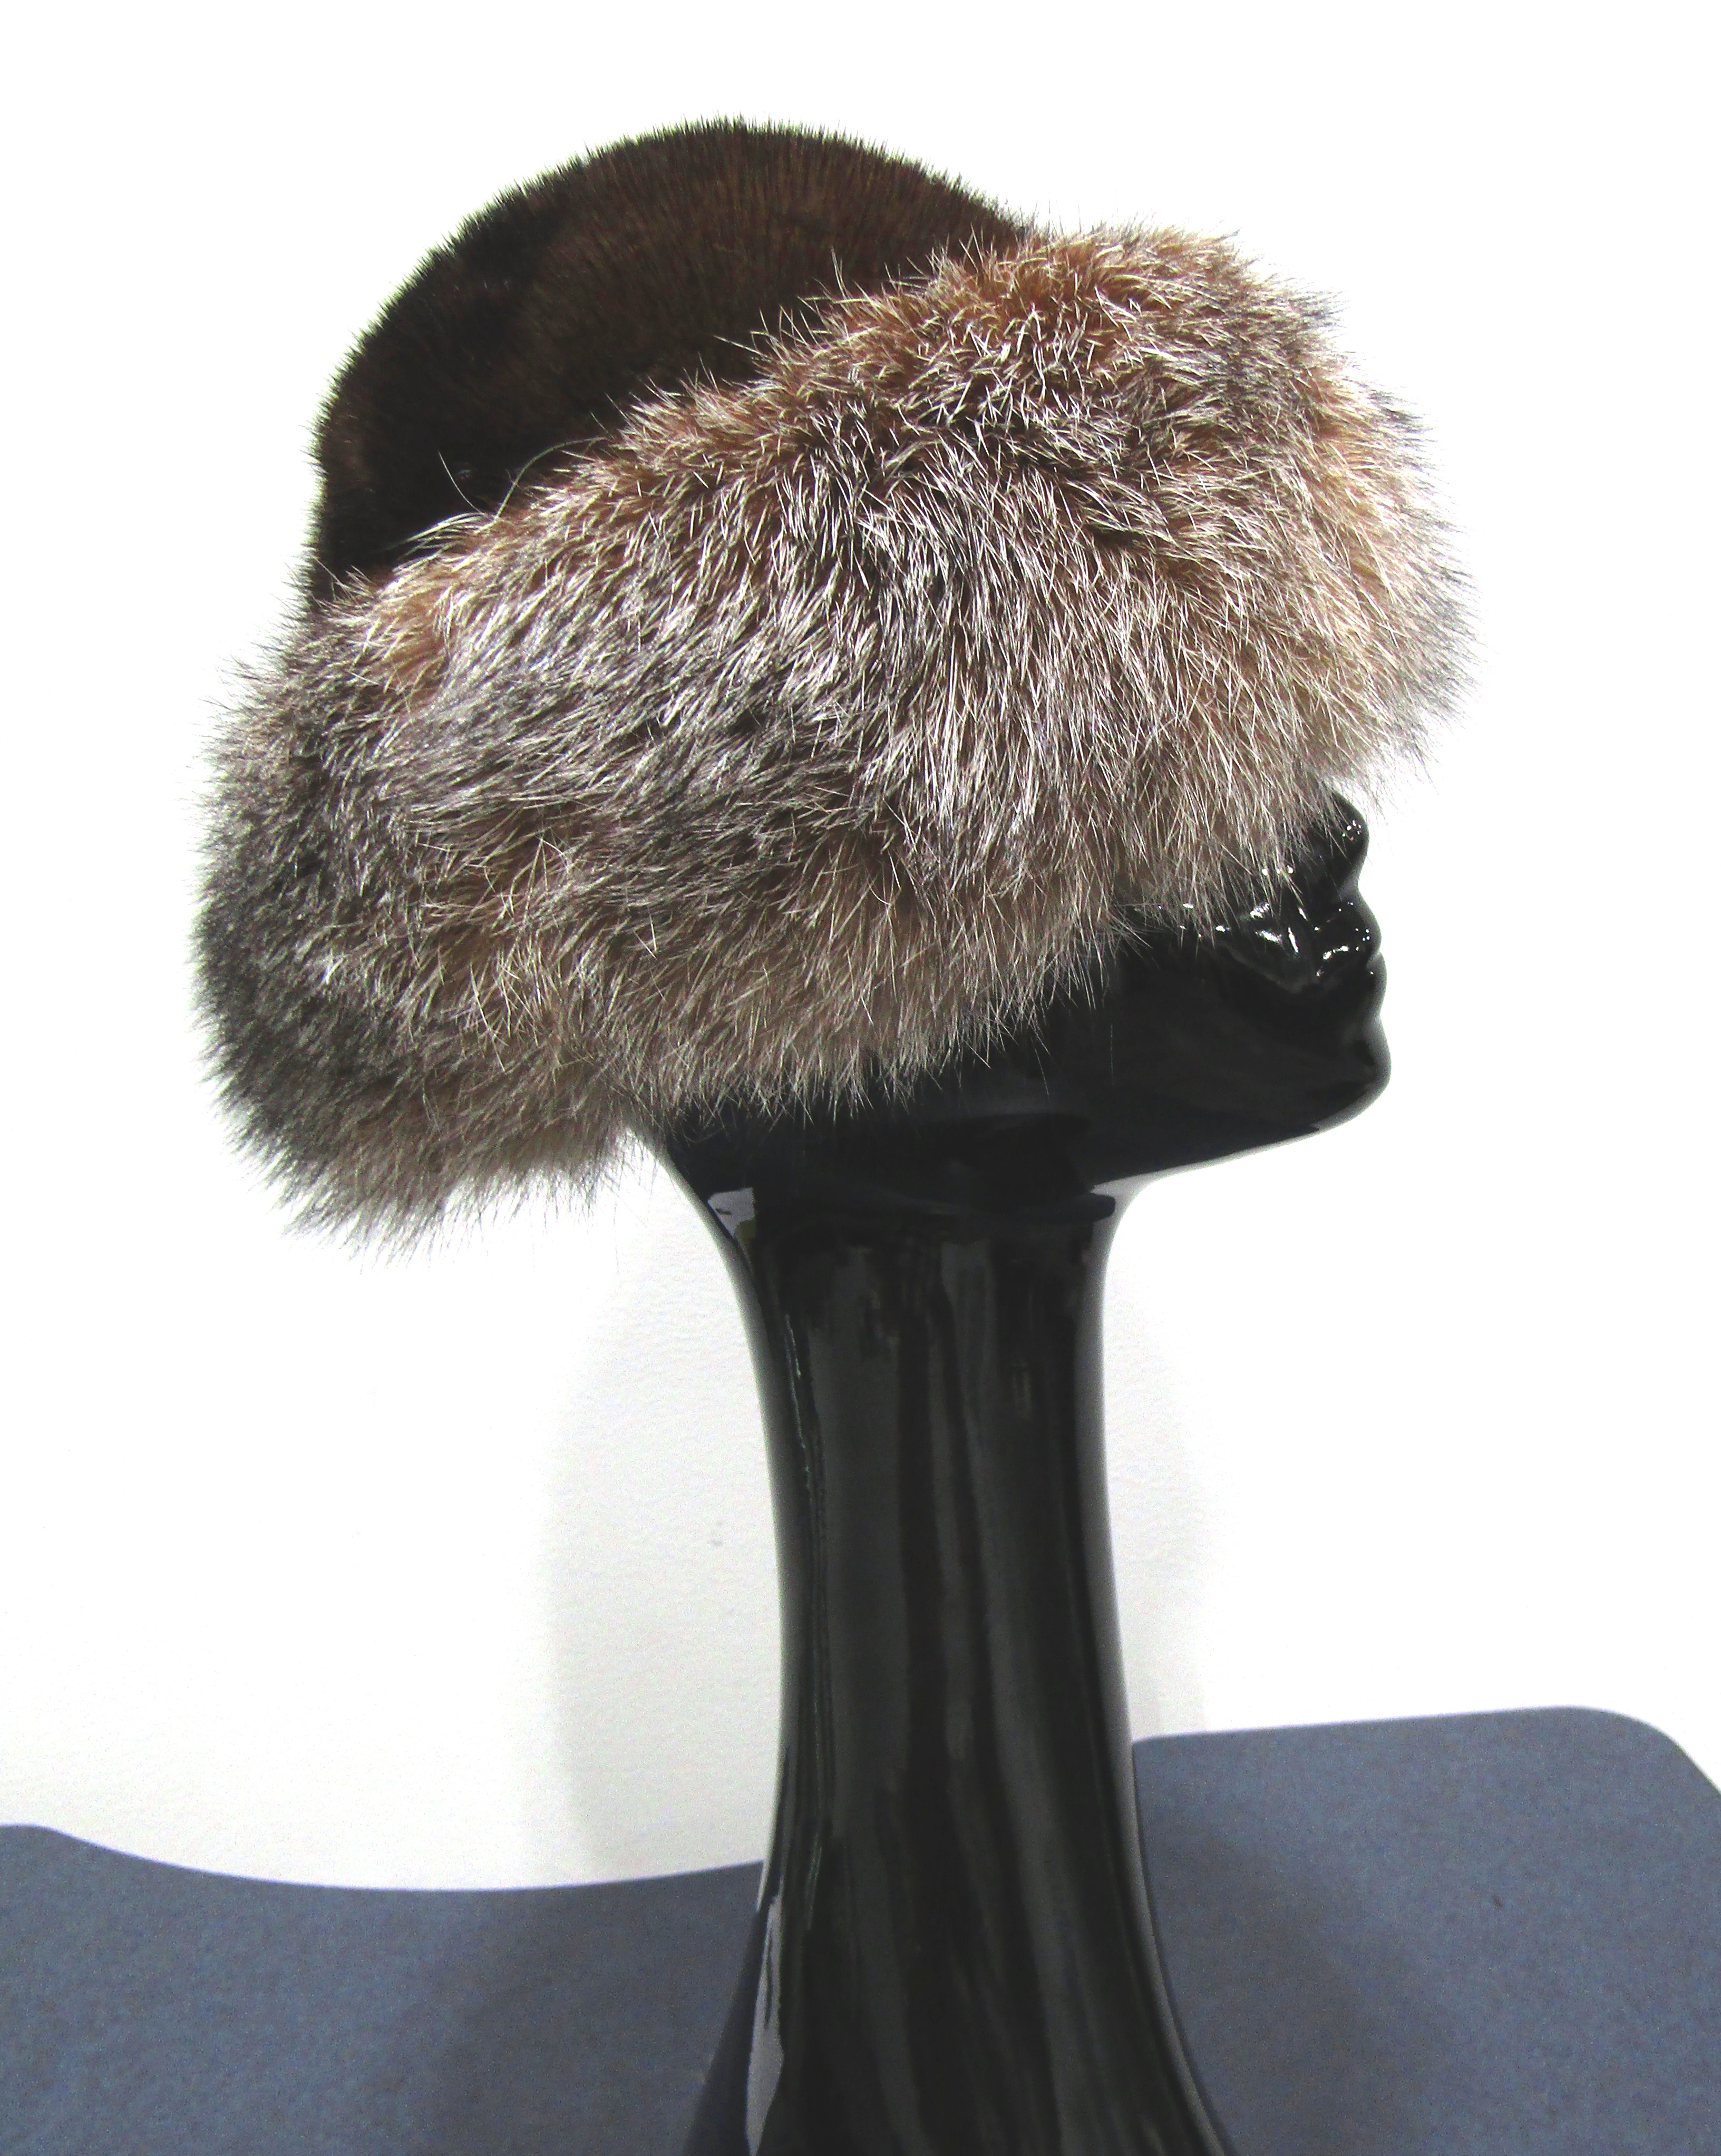 d4bebf13a8c Home - Madison Avenue Furs   Henry Cowit